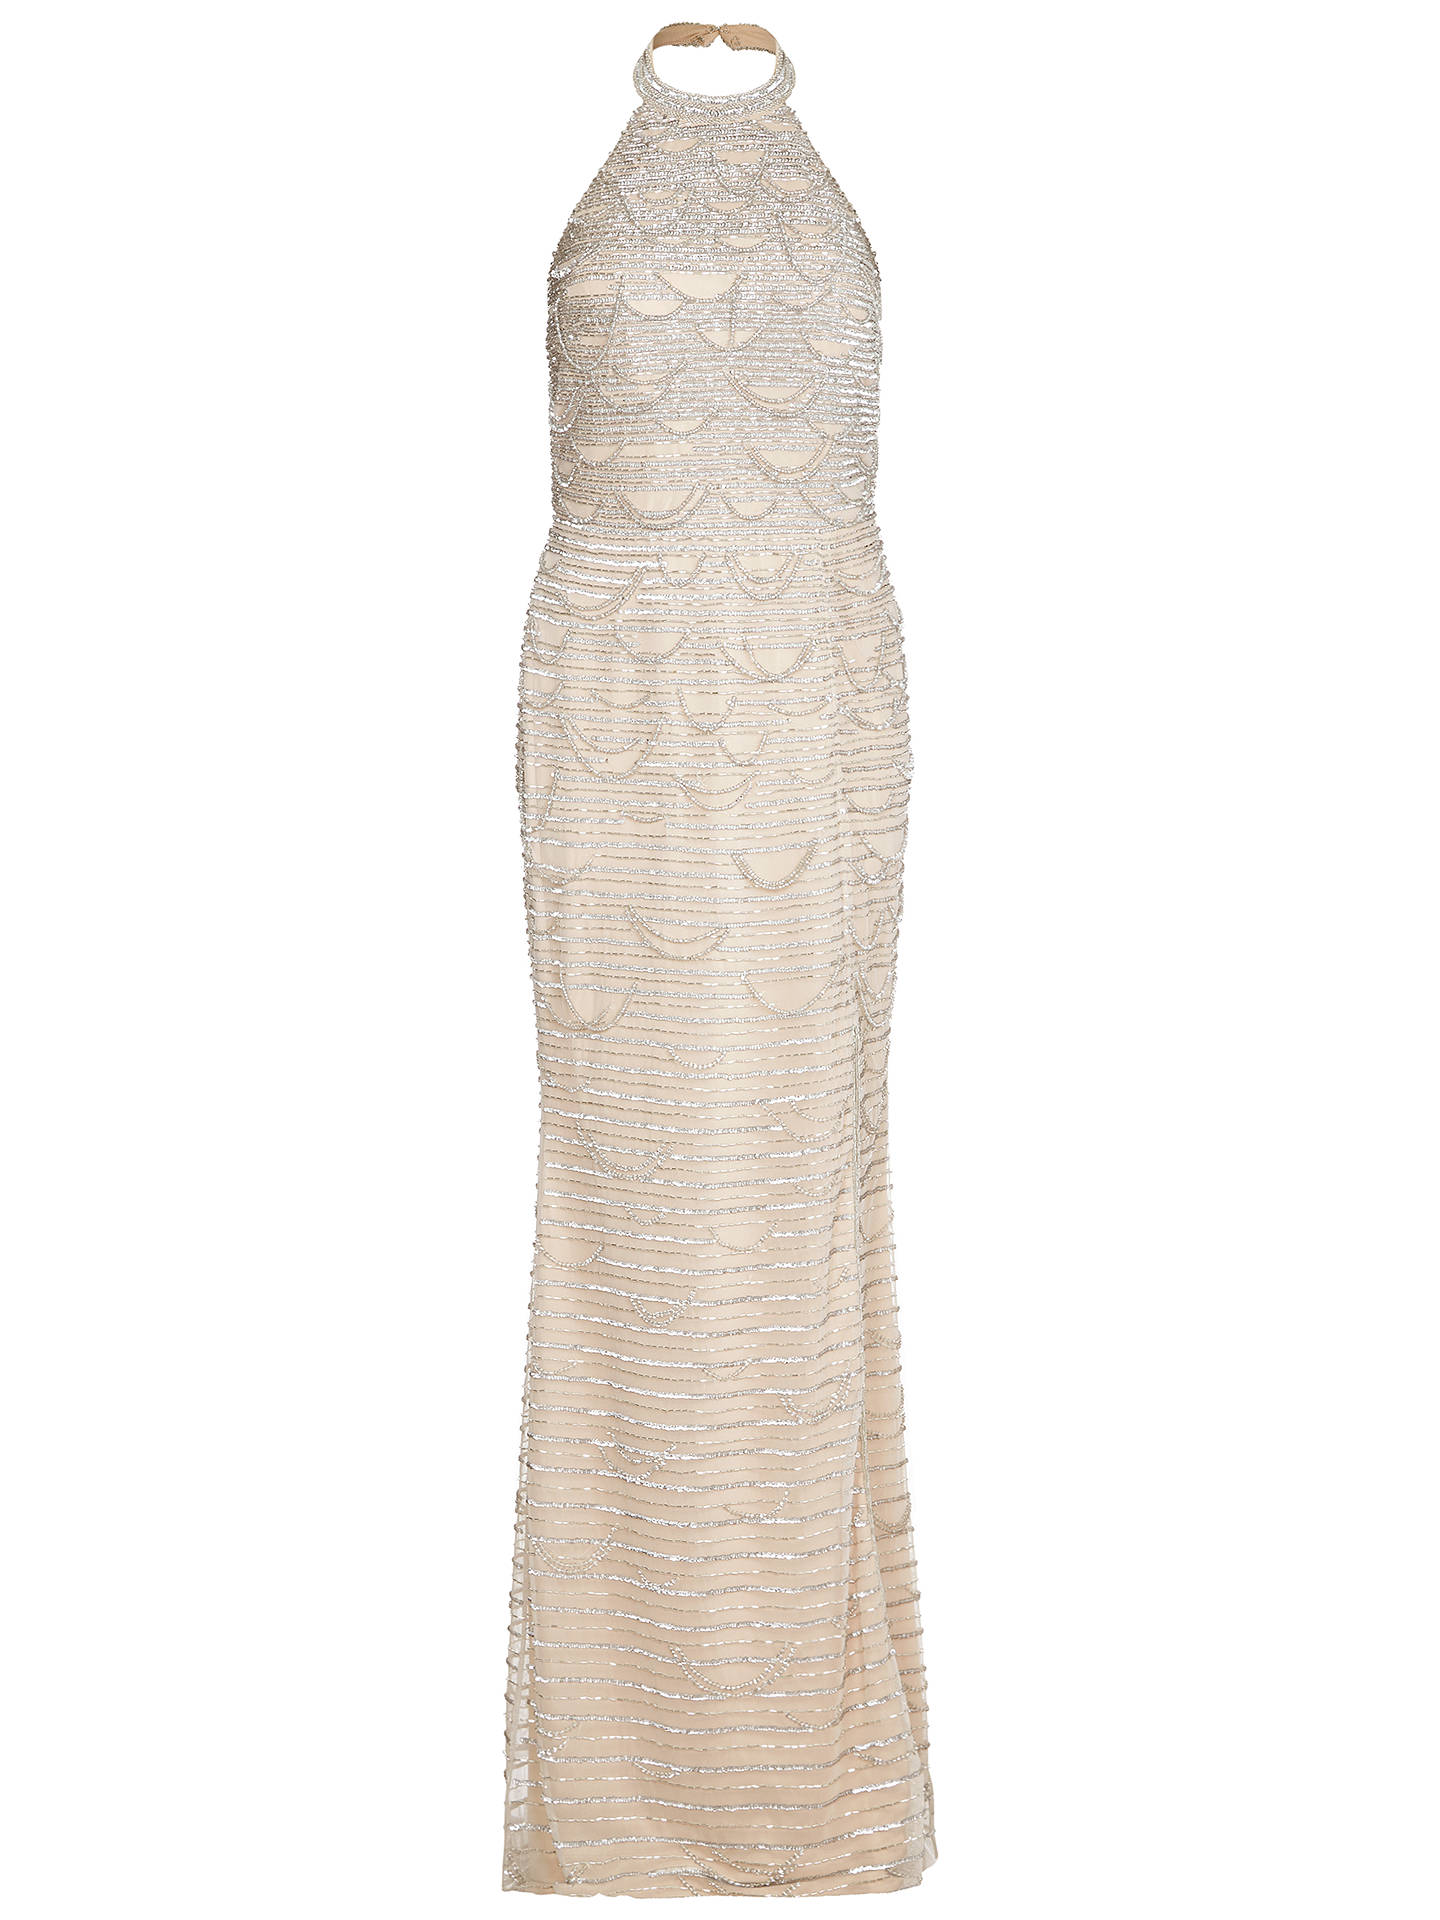 BuyAdrianna Papell Beaded Long Dress, Silver/Nude, 14 Online at johnlewis.com